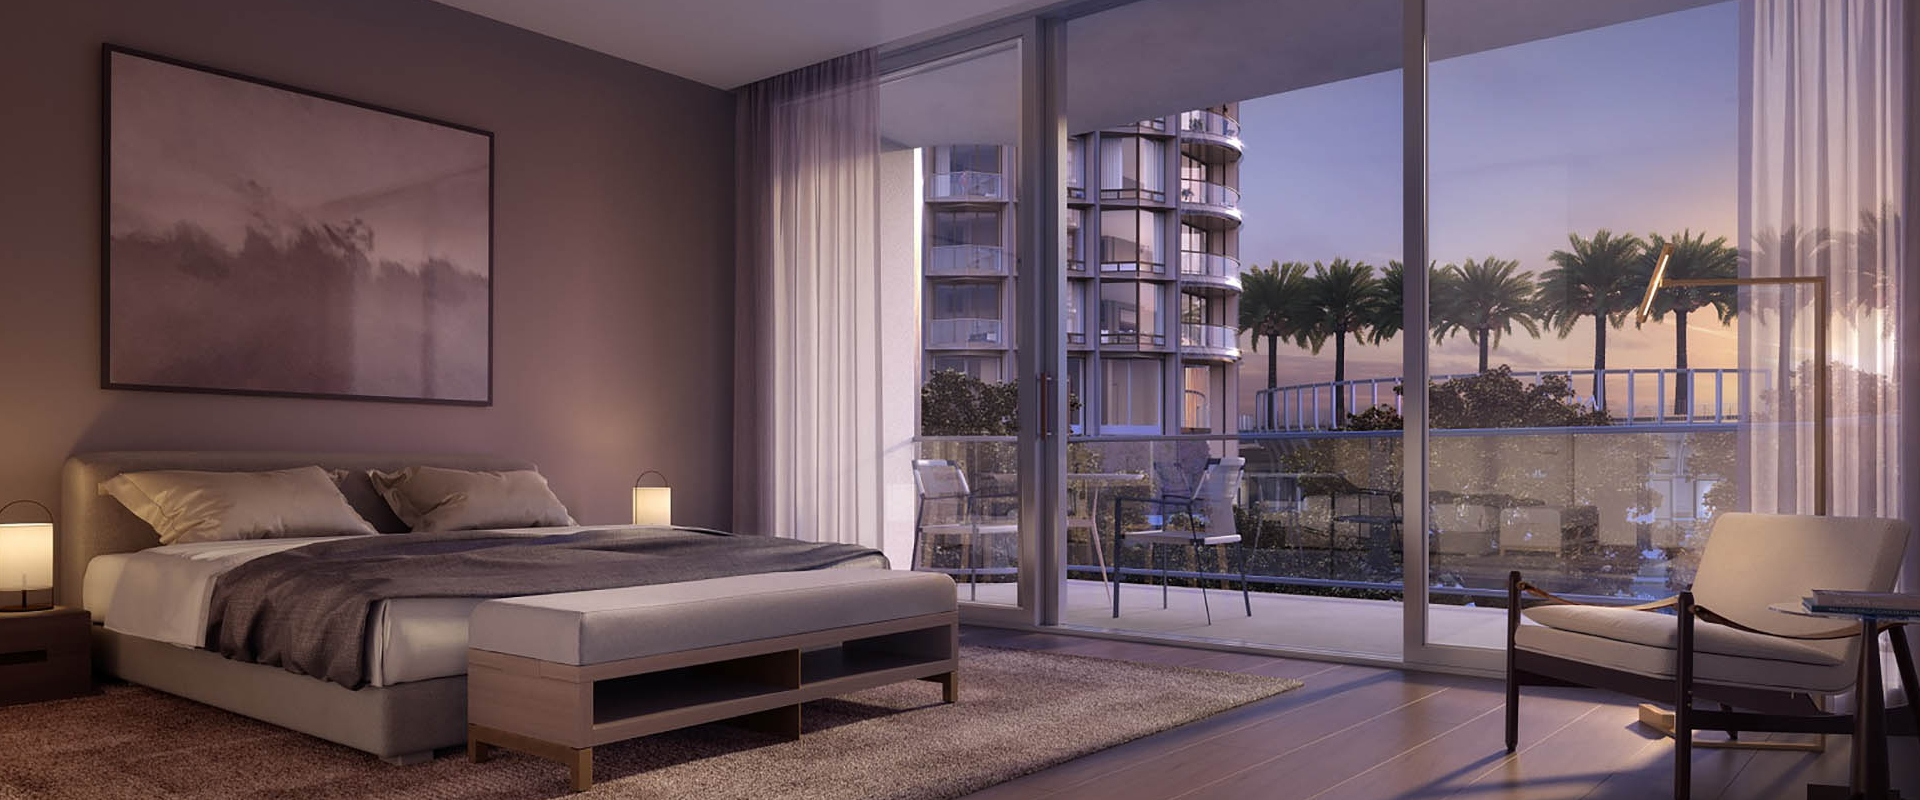 A digital rendering of a King bedroom hotel room at Fairmont Century Plaza.